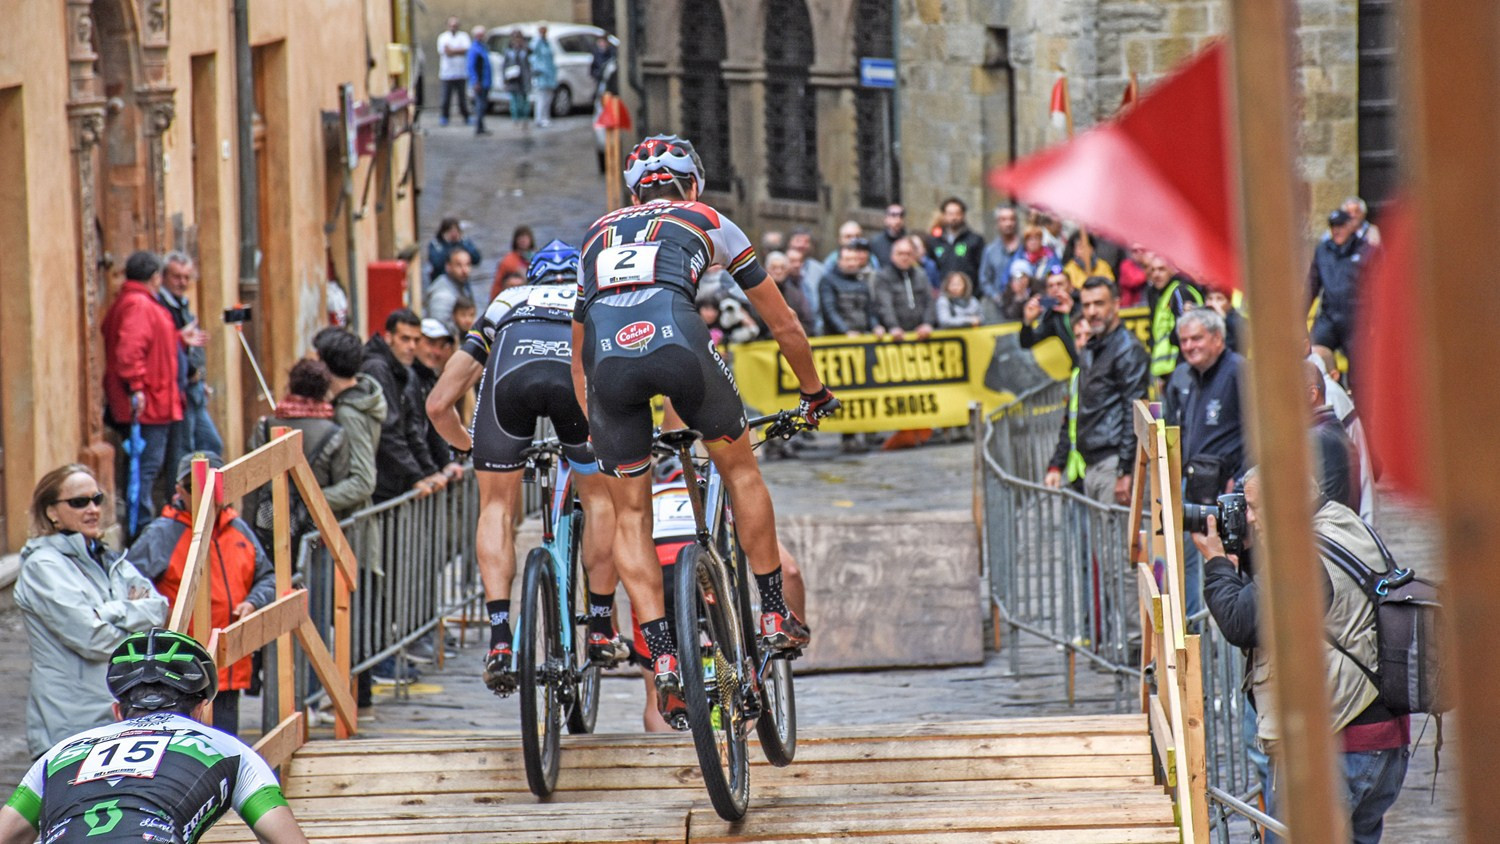 Cross-country eliminator added to UCI Urban Cycling World Championships programme